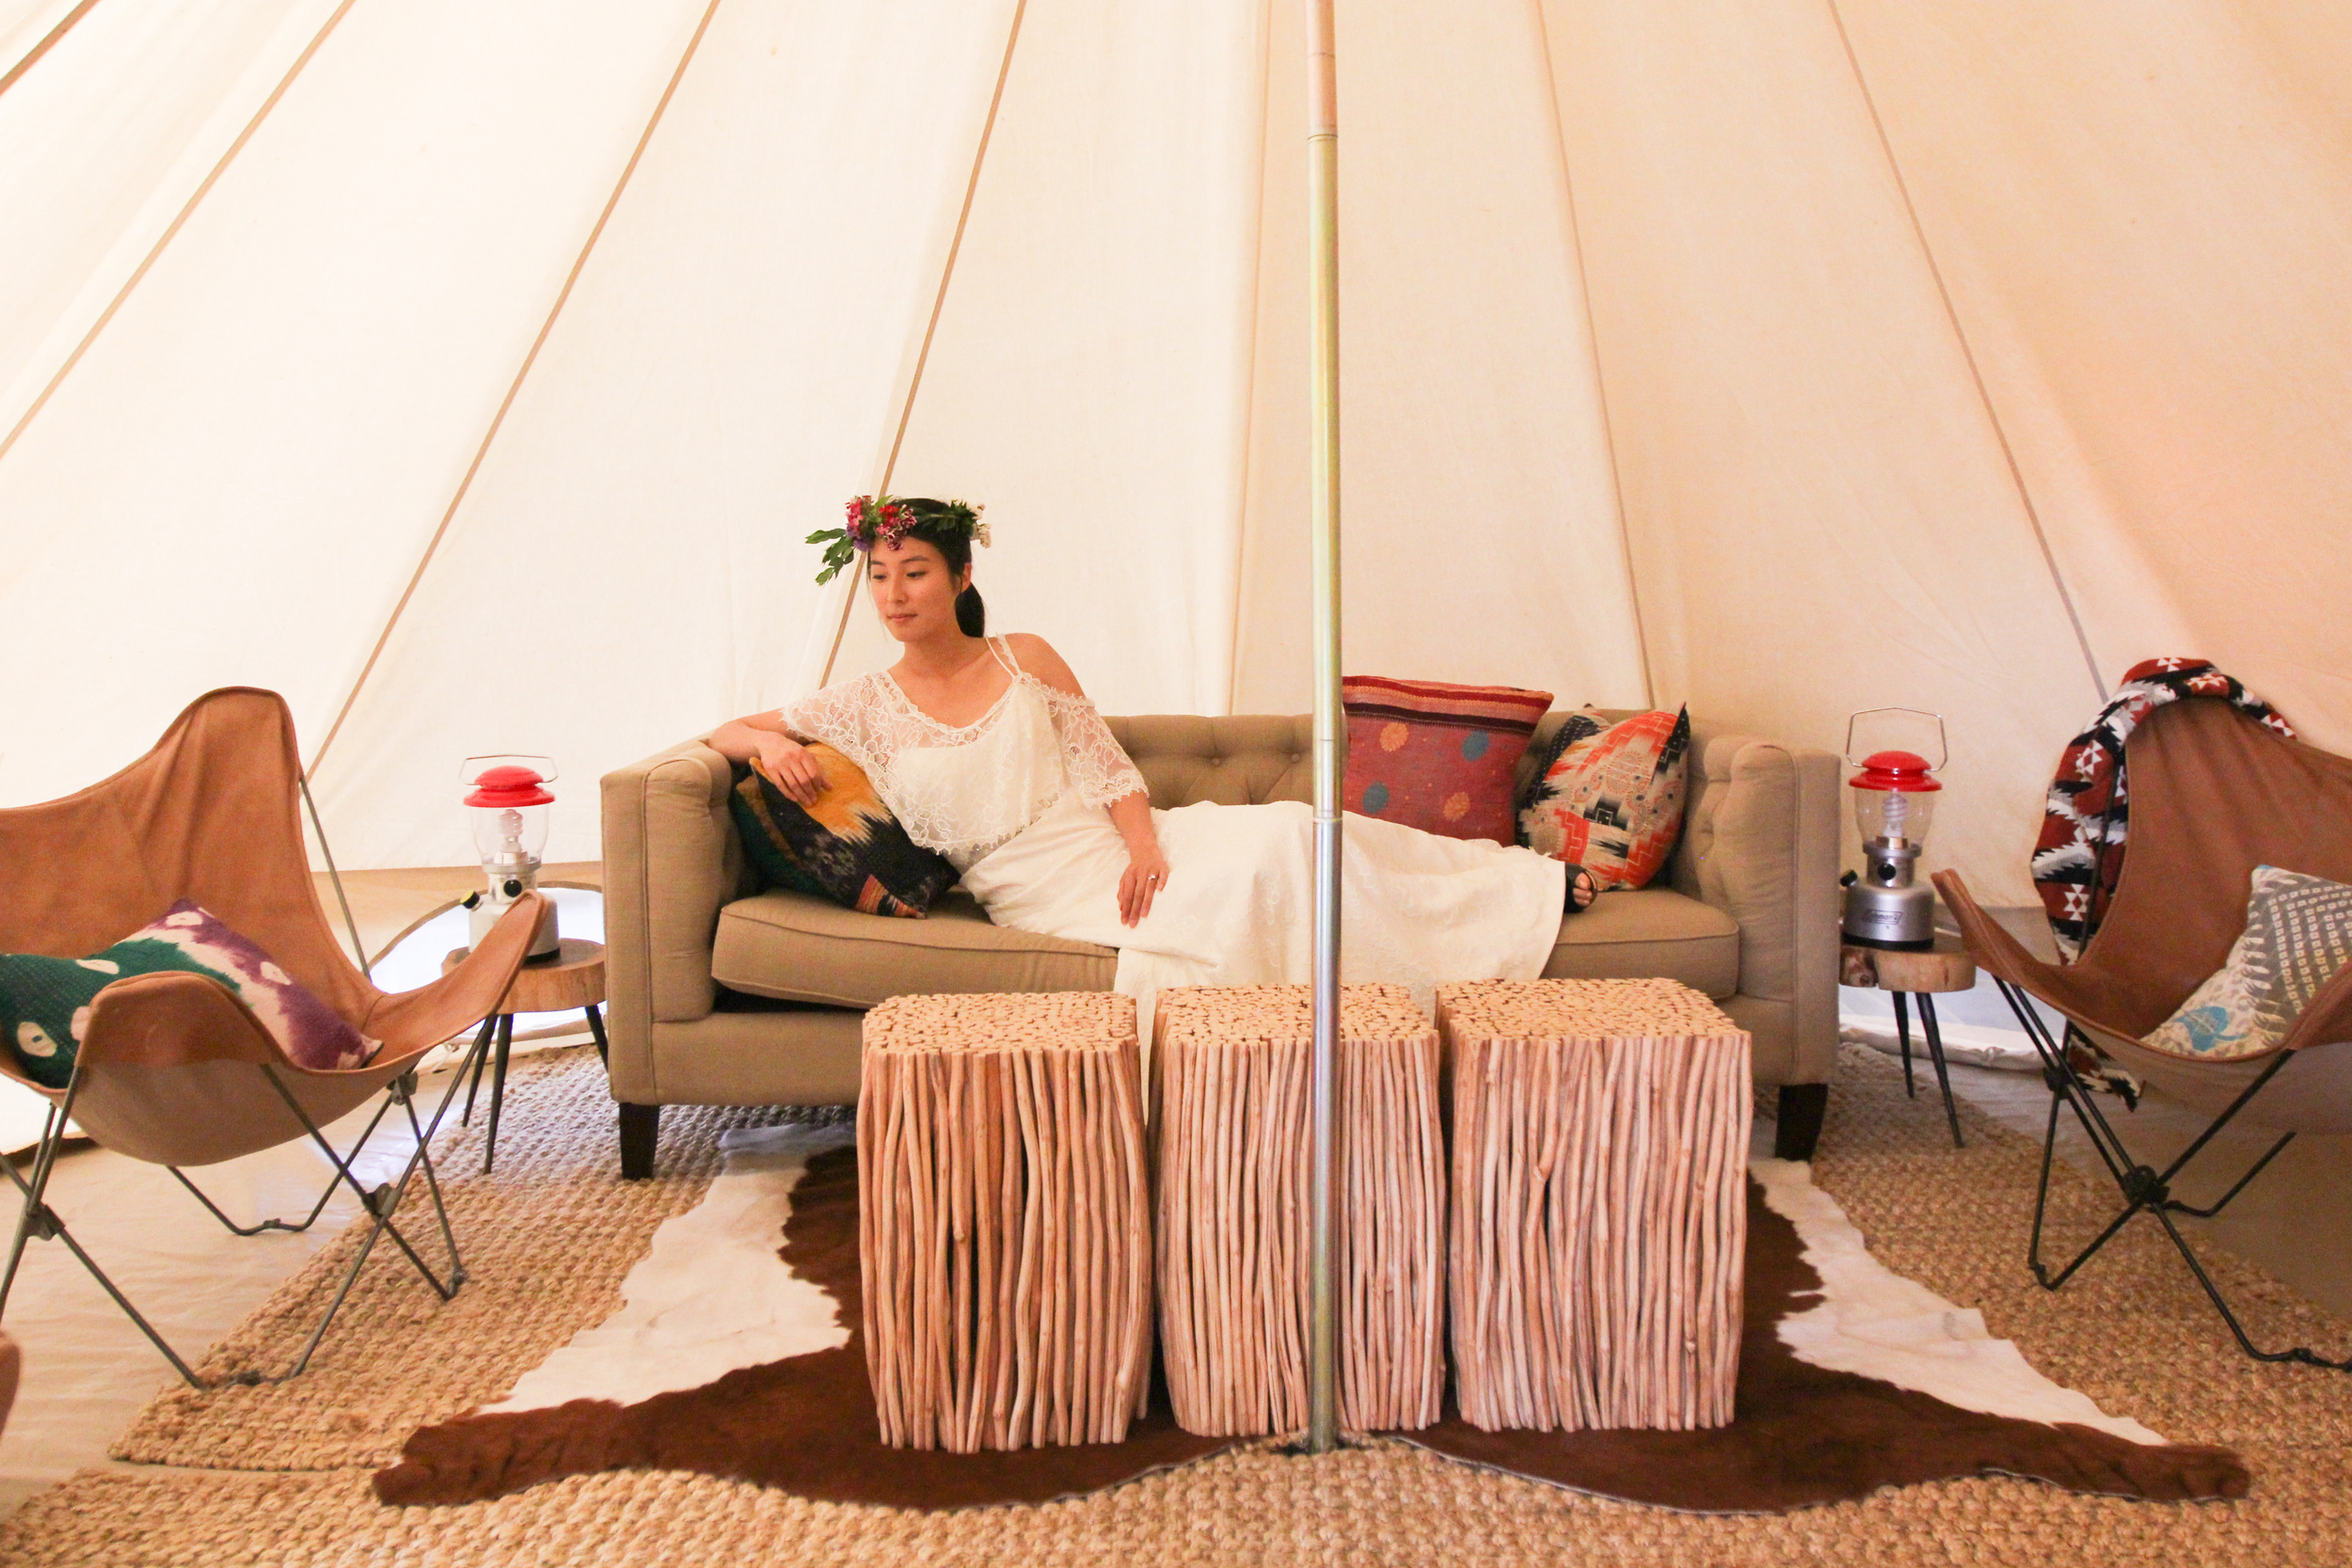 Lounge in the  Joni wedding dress  in a luxury tent by  Shelter Co .